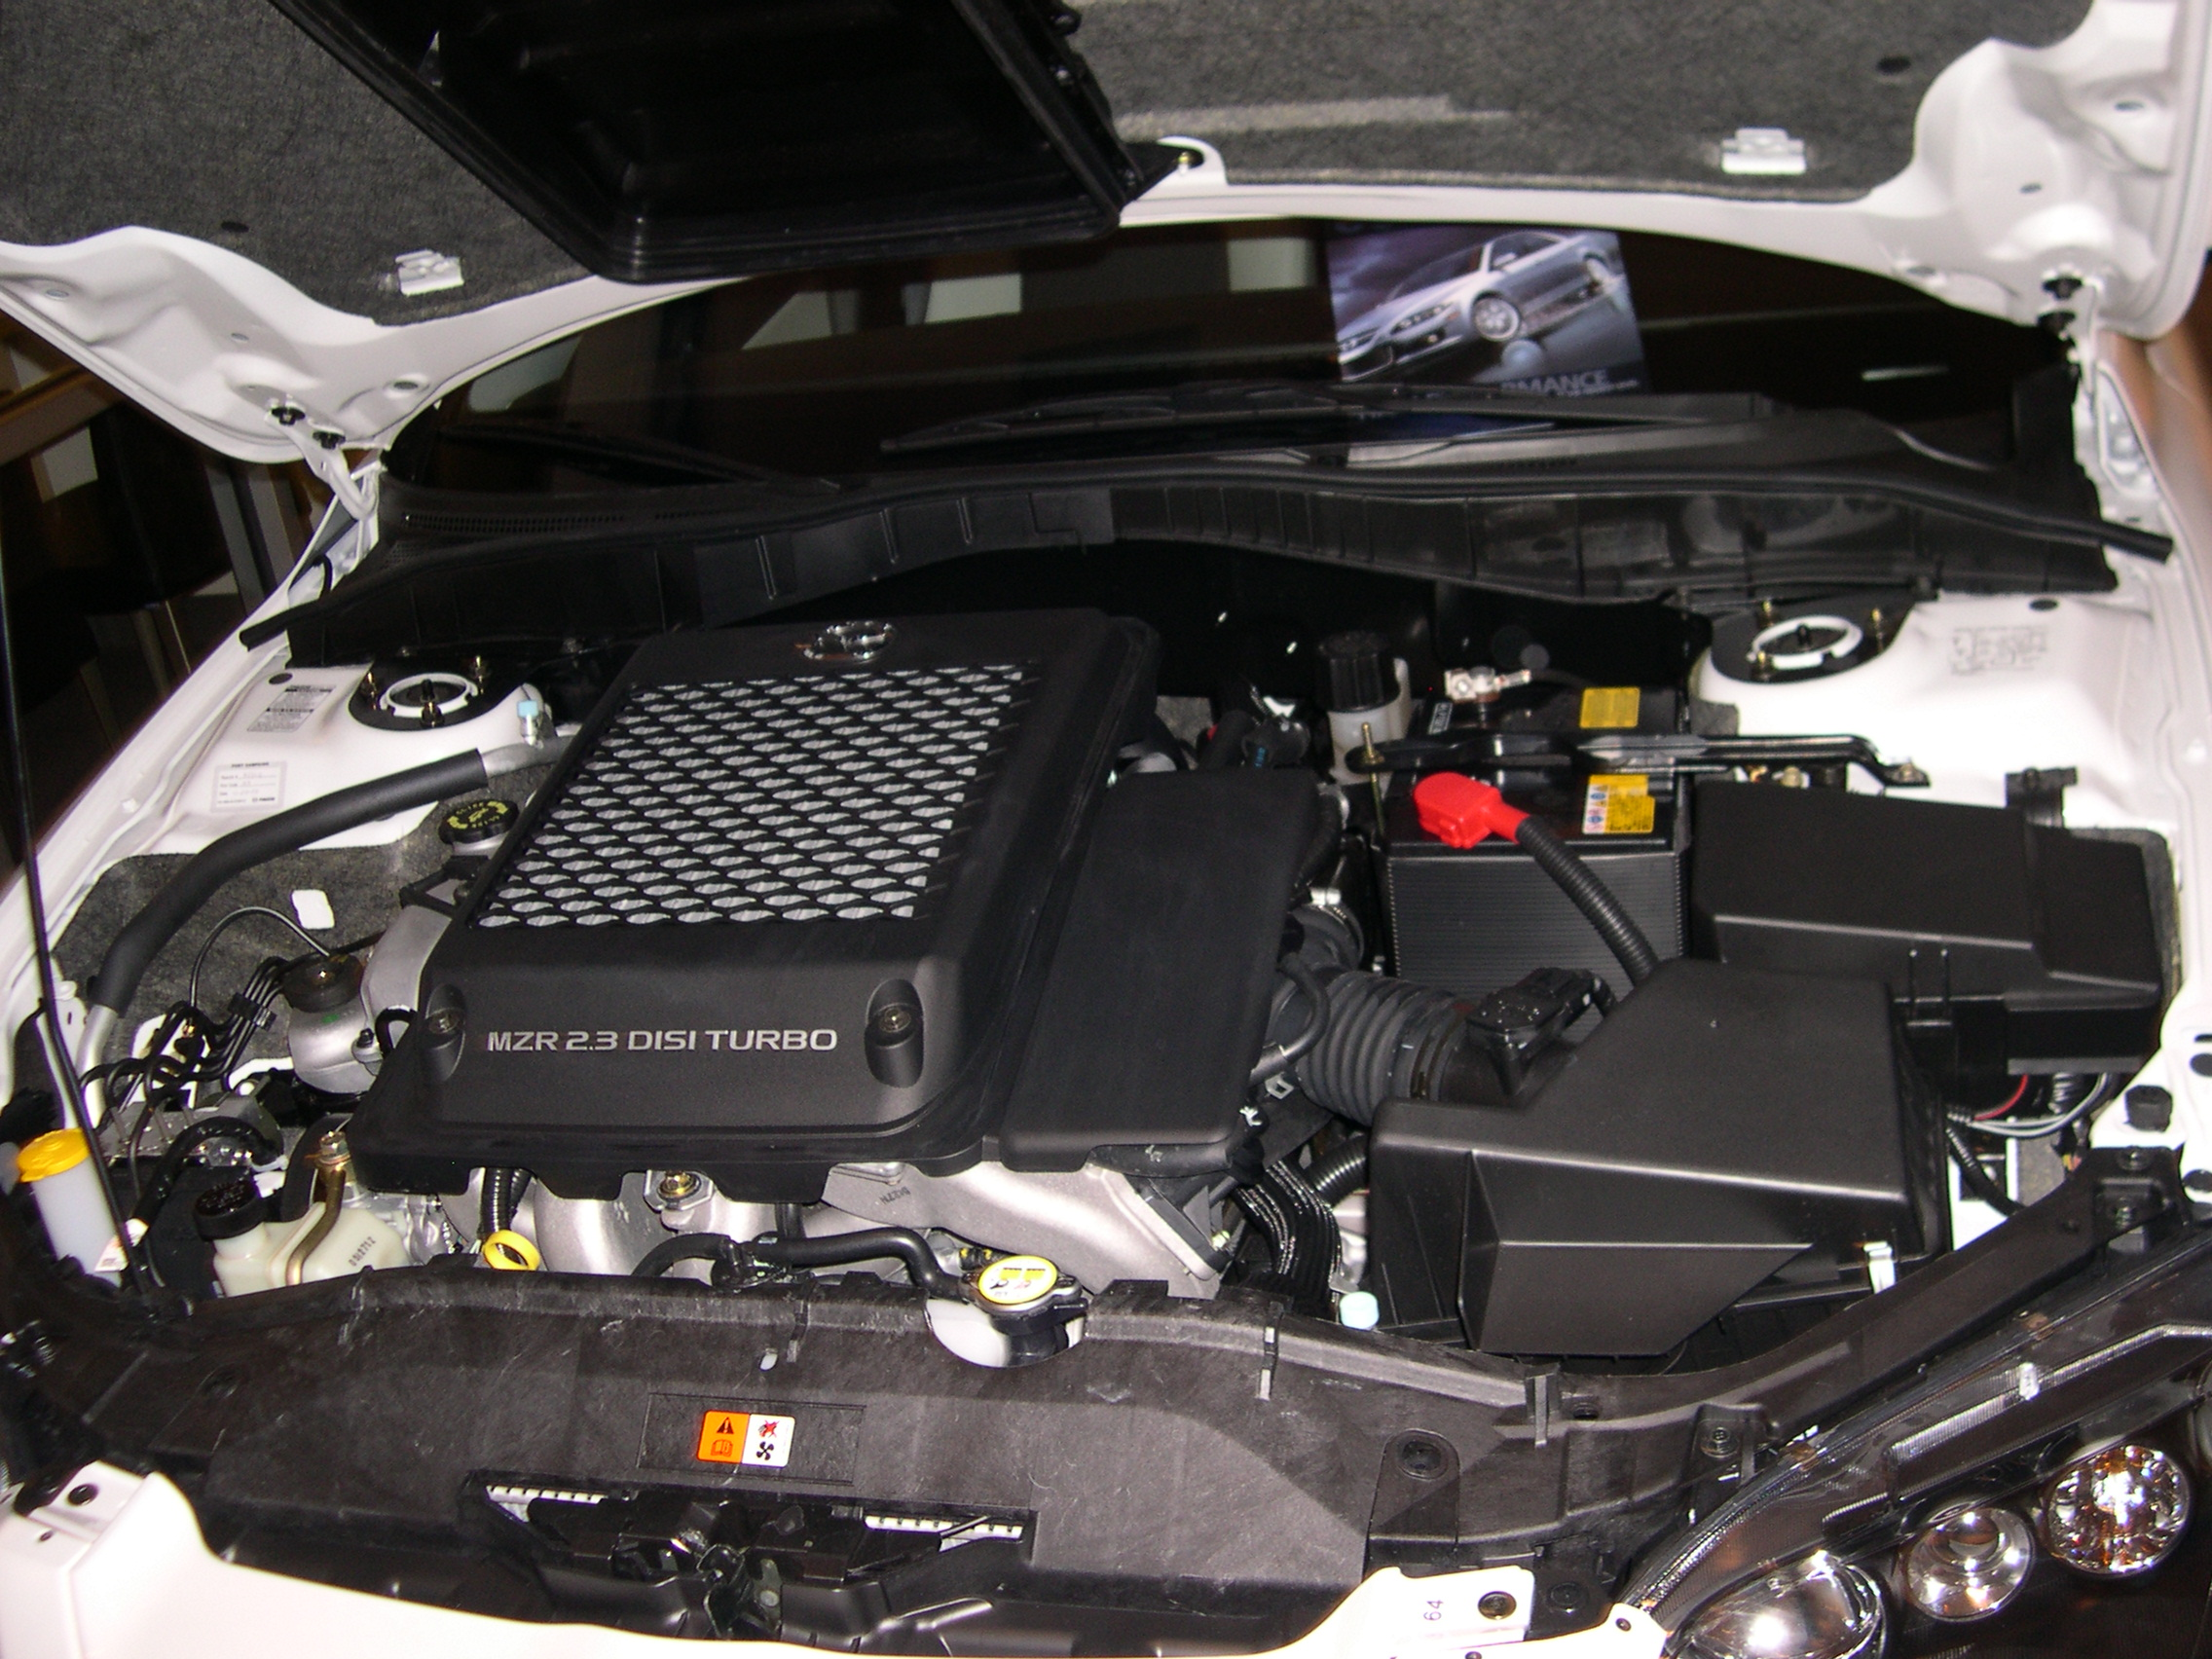 file 2006 mazdaspeed 6 mzr engine jpg wikimedia commons. Black Bedroom Furniture Sets. Home Design Ideas